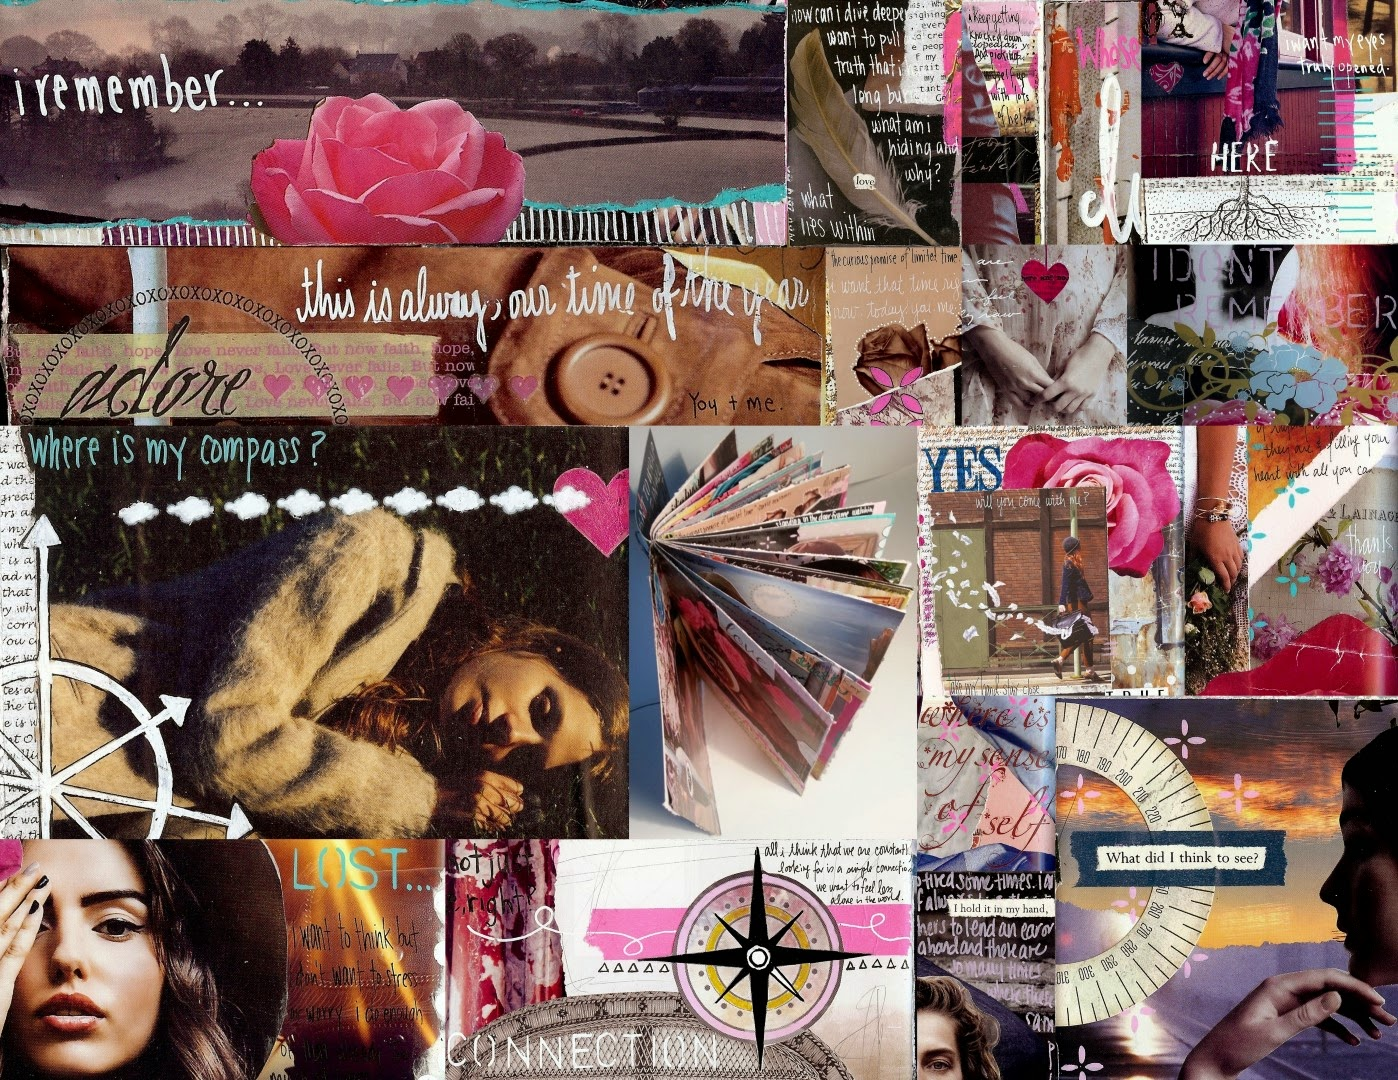 Kelly Kilmer Artist and Instructor: Making My Mark: A Prompt A Day Revised and Revisited: January 2015: Collage